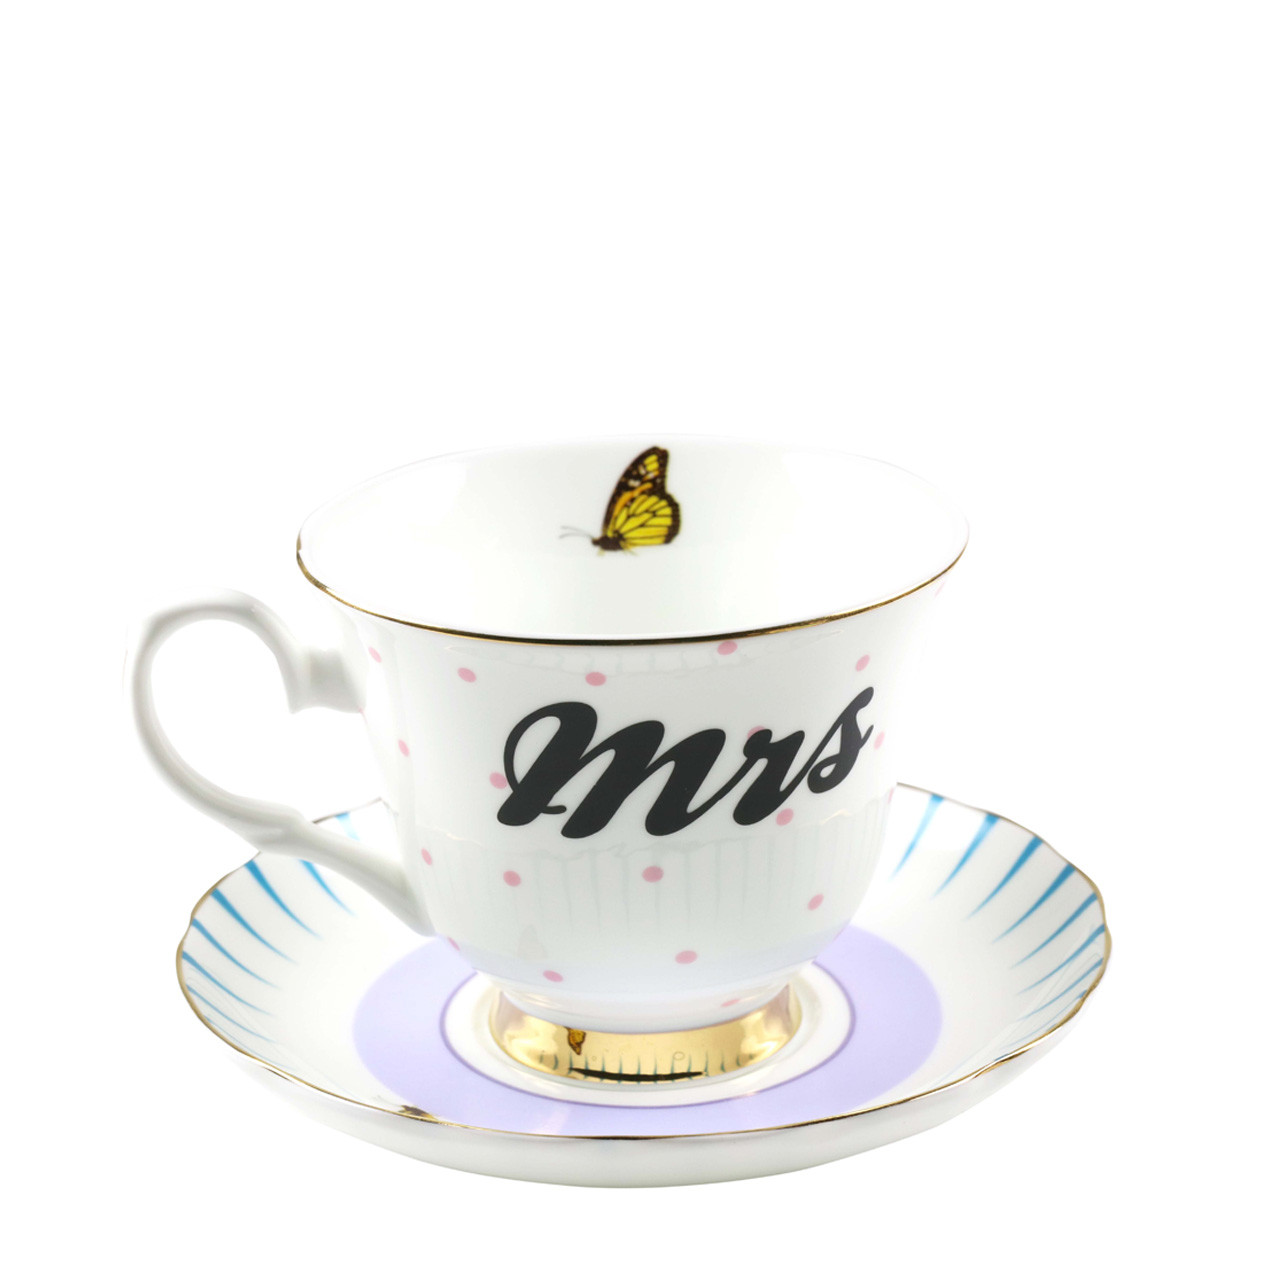 Mrs Teacup Saucer 280 Ml Giftbori